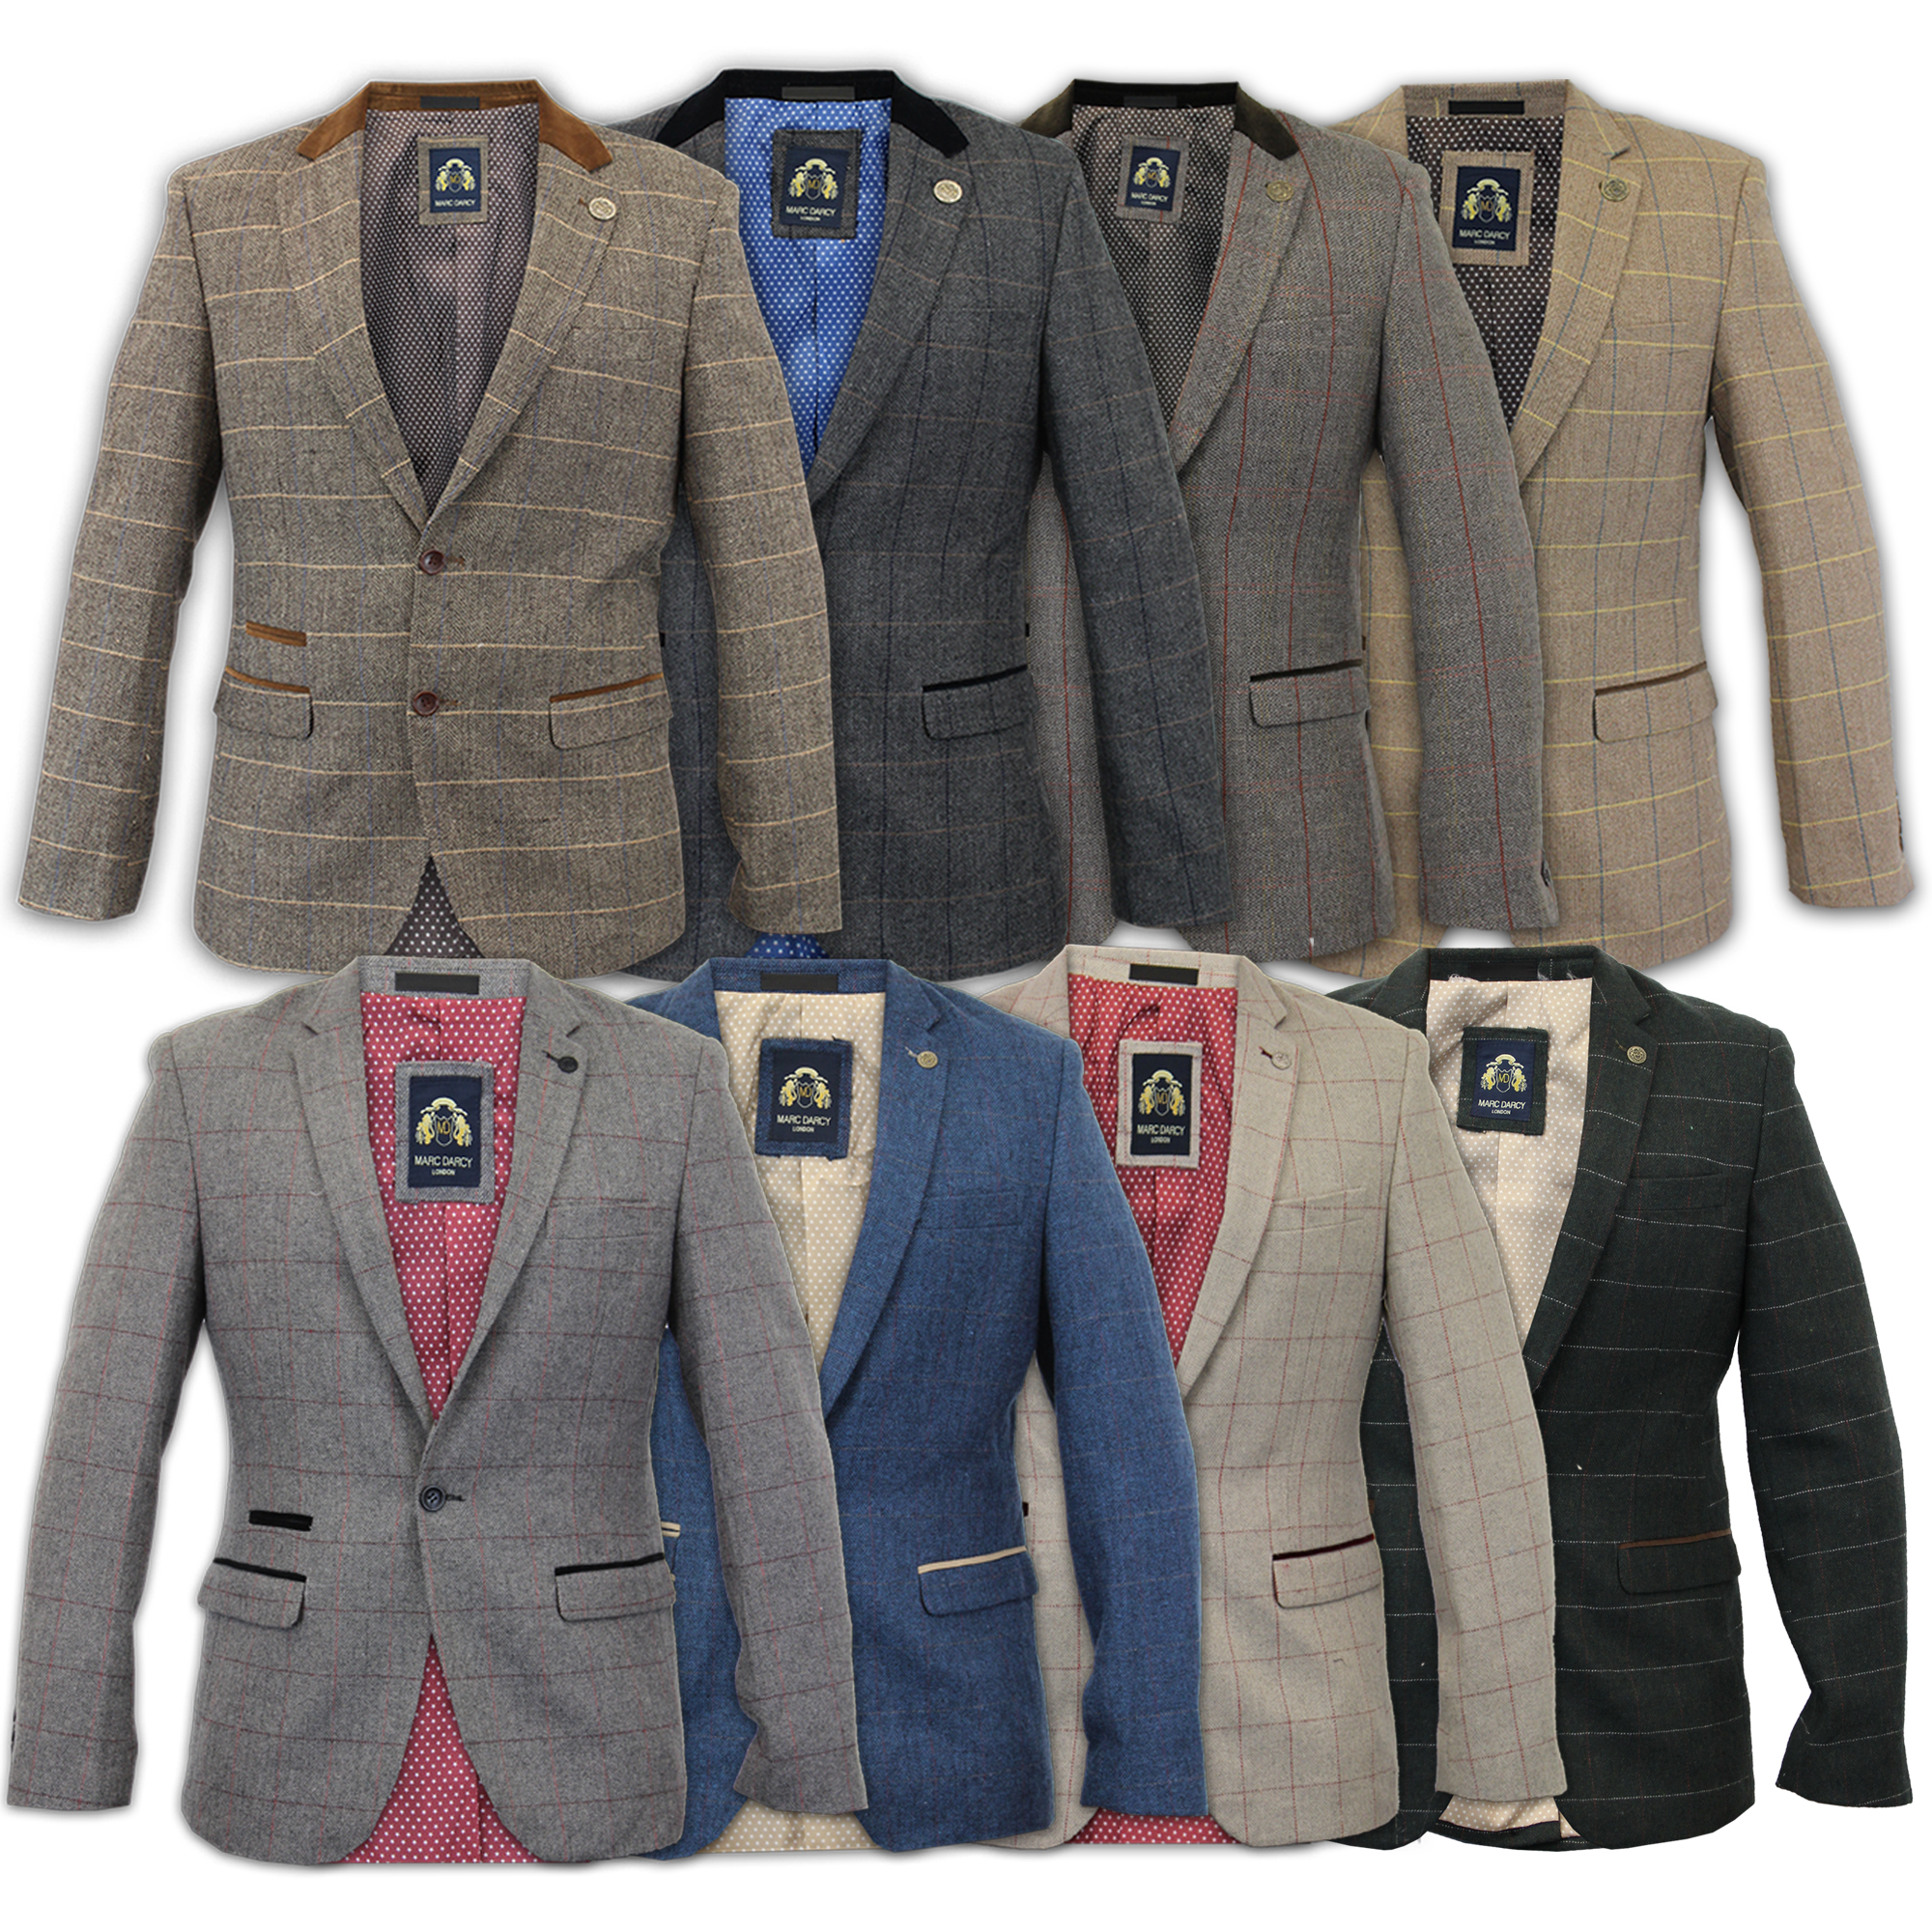 Mens-Blazer-Marc-Darcy-Wool-Look-Coat-Formal-Dinner-Check-Jacket-Patch-Lined-New thumbnail 4